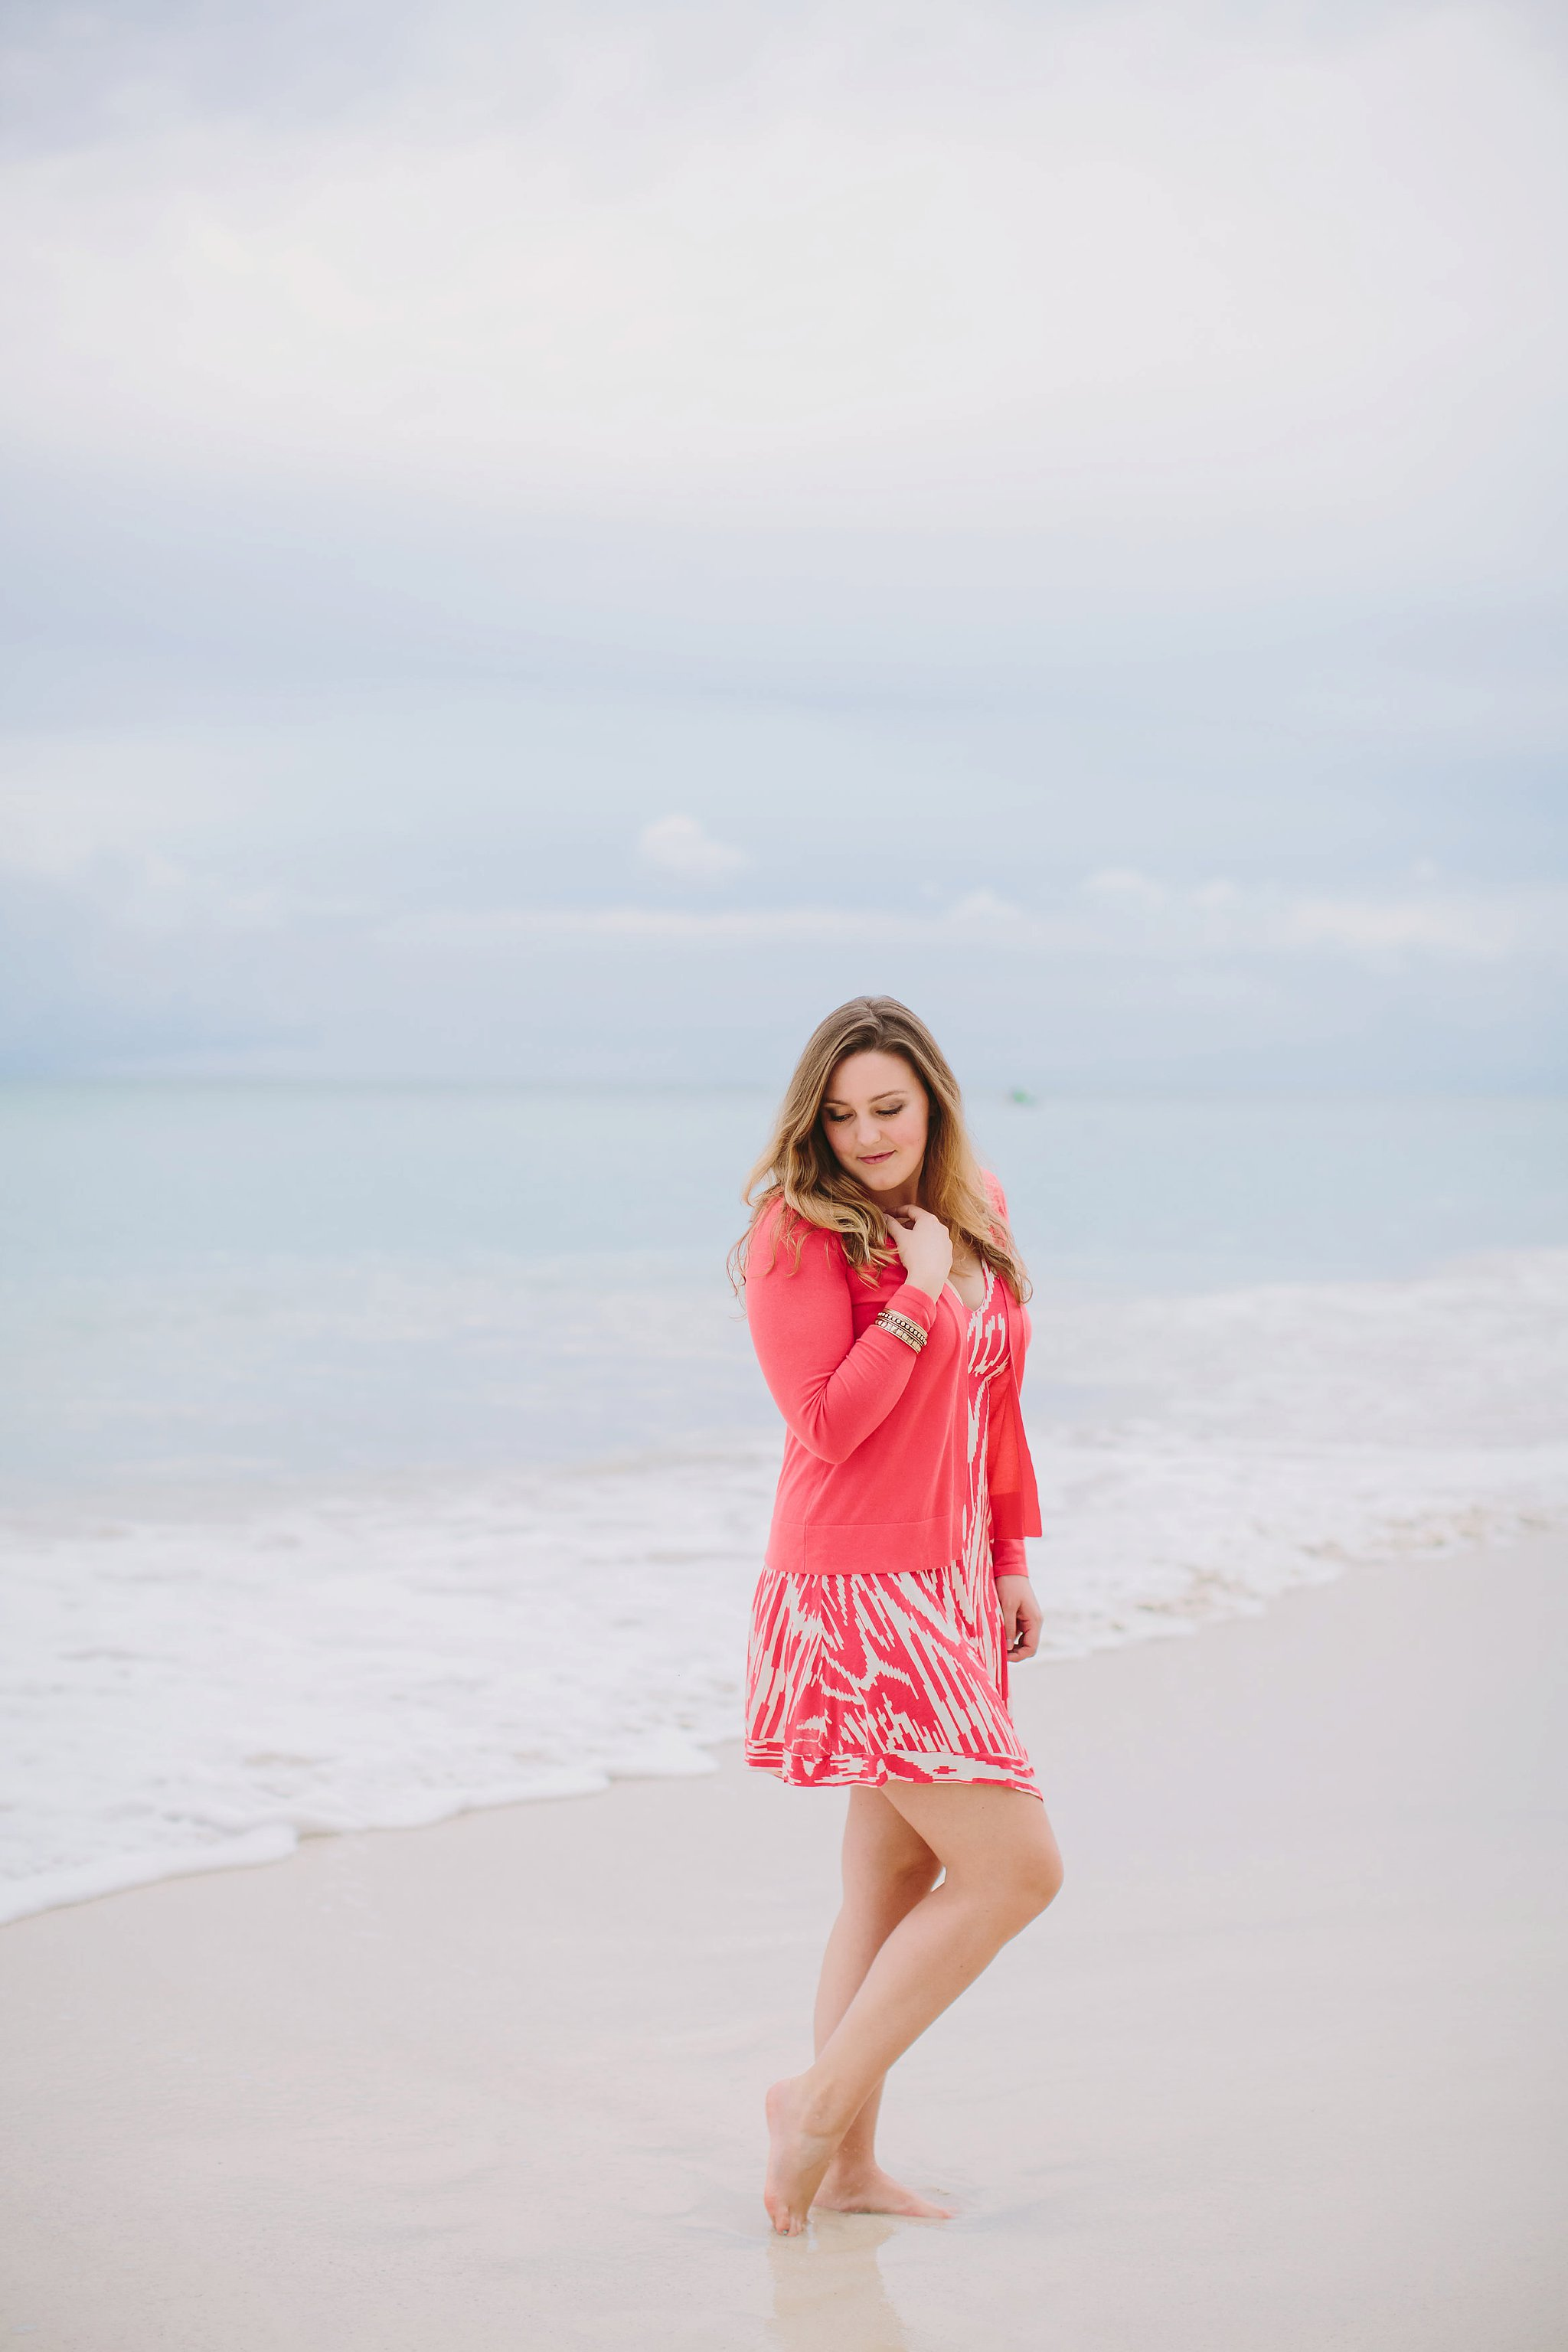 megan-kailua-portrait-photographer-107.jpg